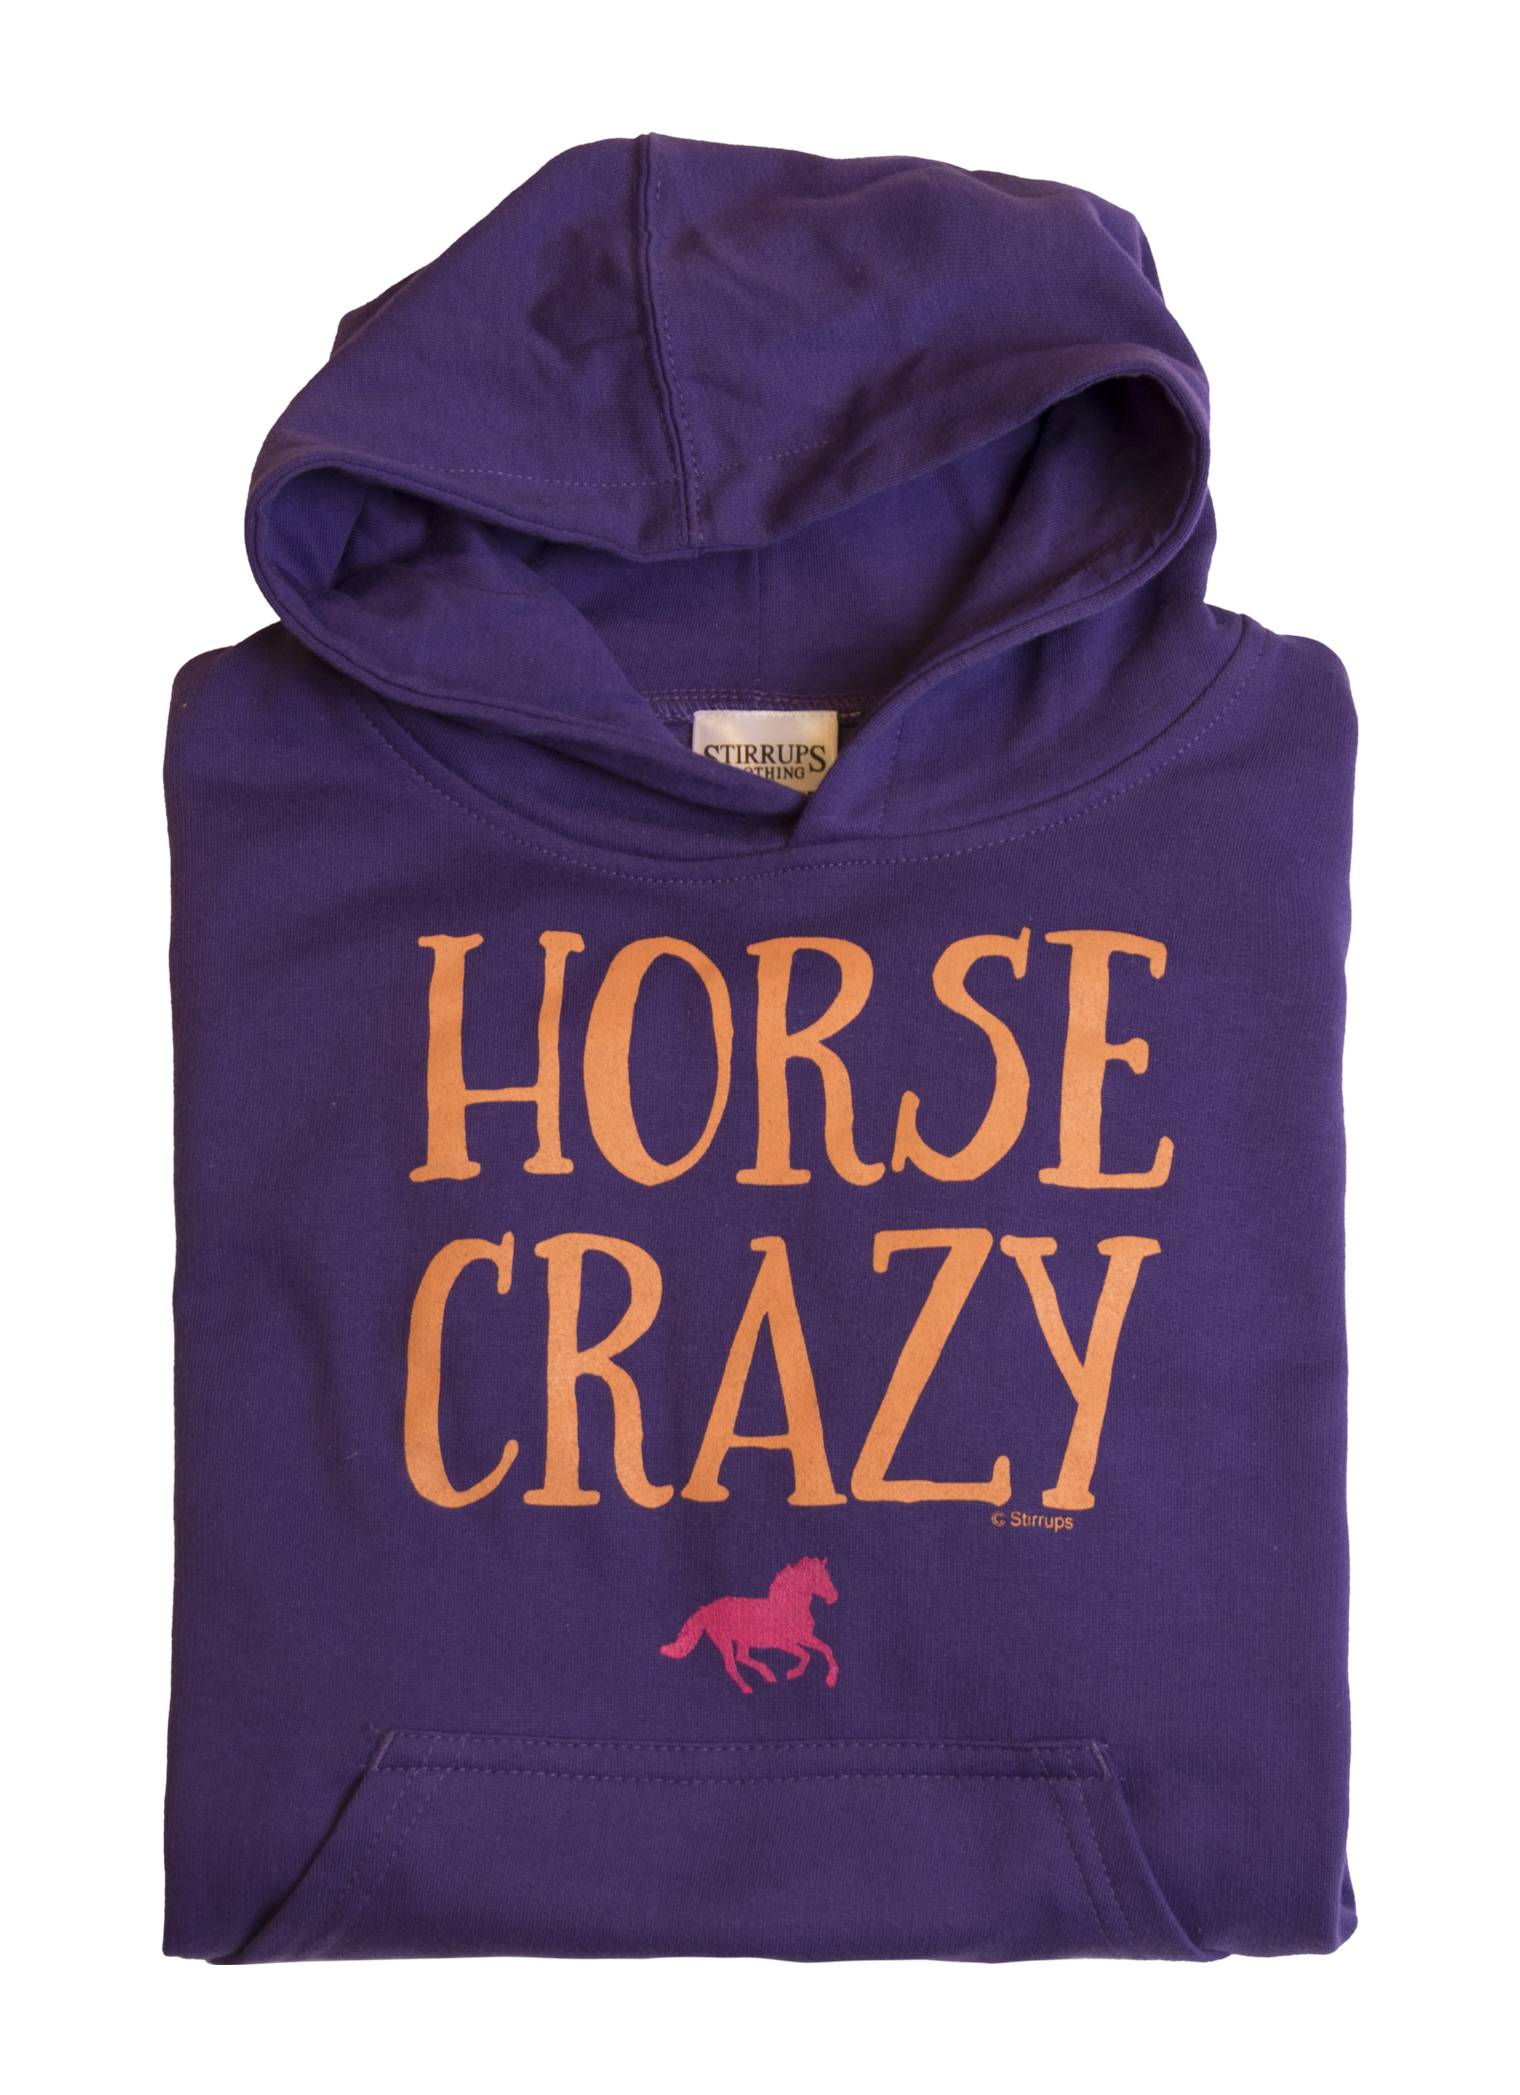 Stirrups Horse Crazy Fleece Hooded Sweatshirt - Kids